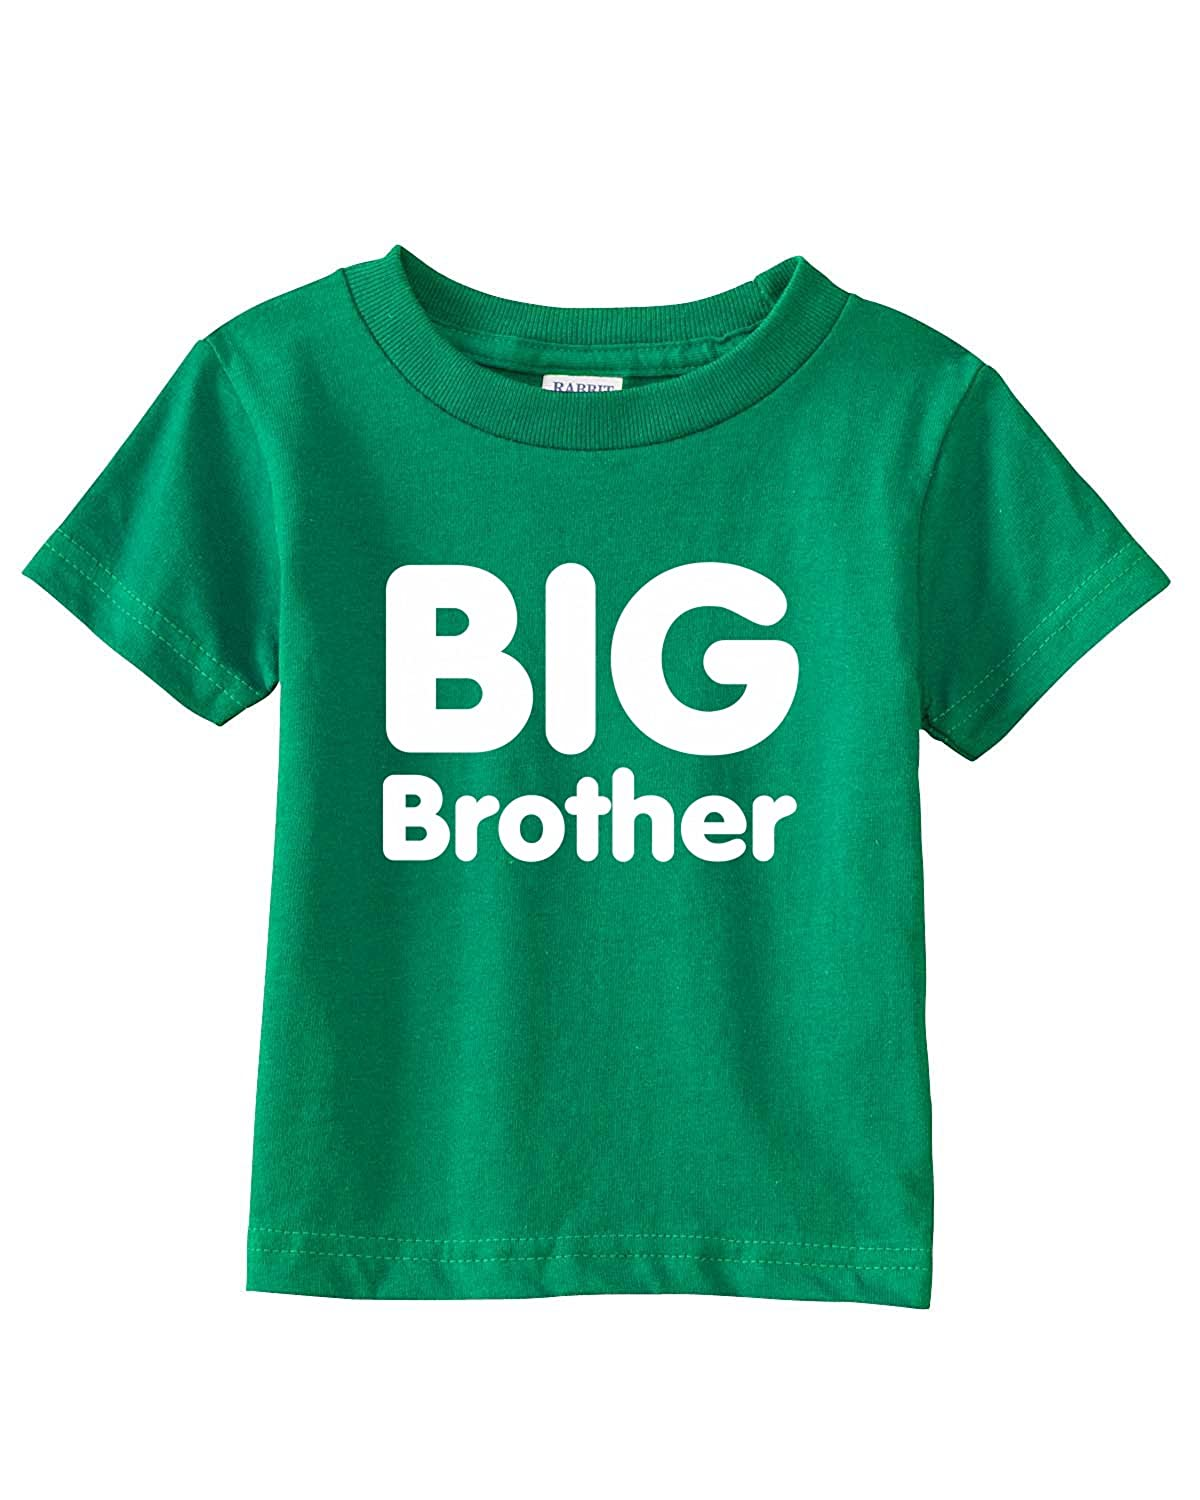 South Horizon BIG BROTHER on Infant & Toddler Cotton T-Shirt (in 21 colors) AM_P_0009333